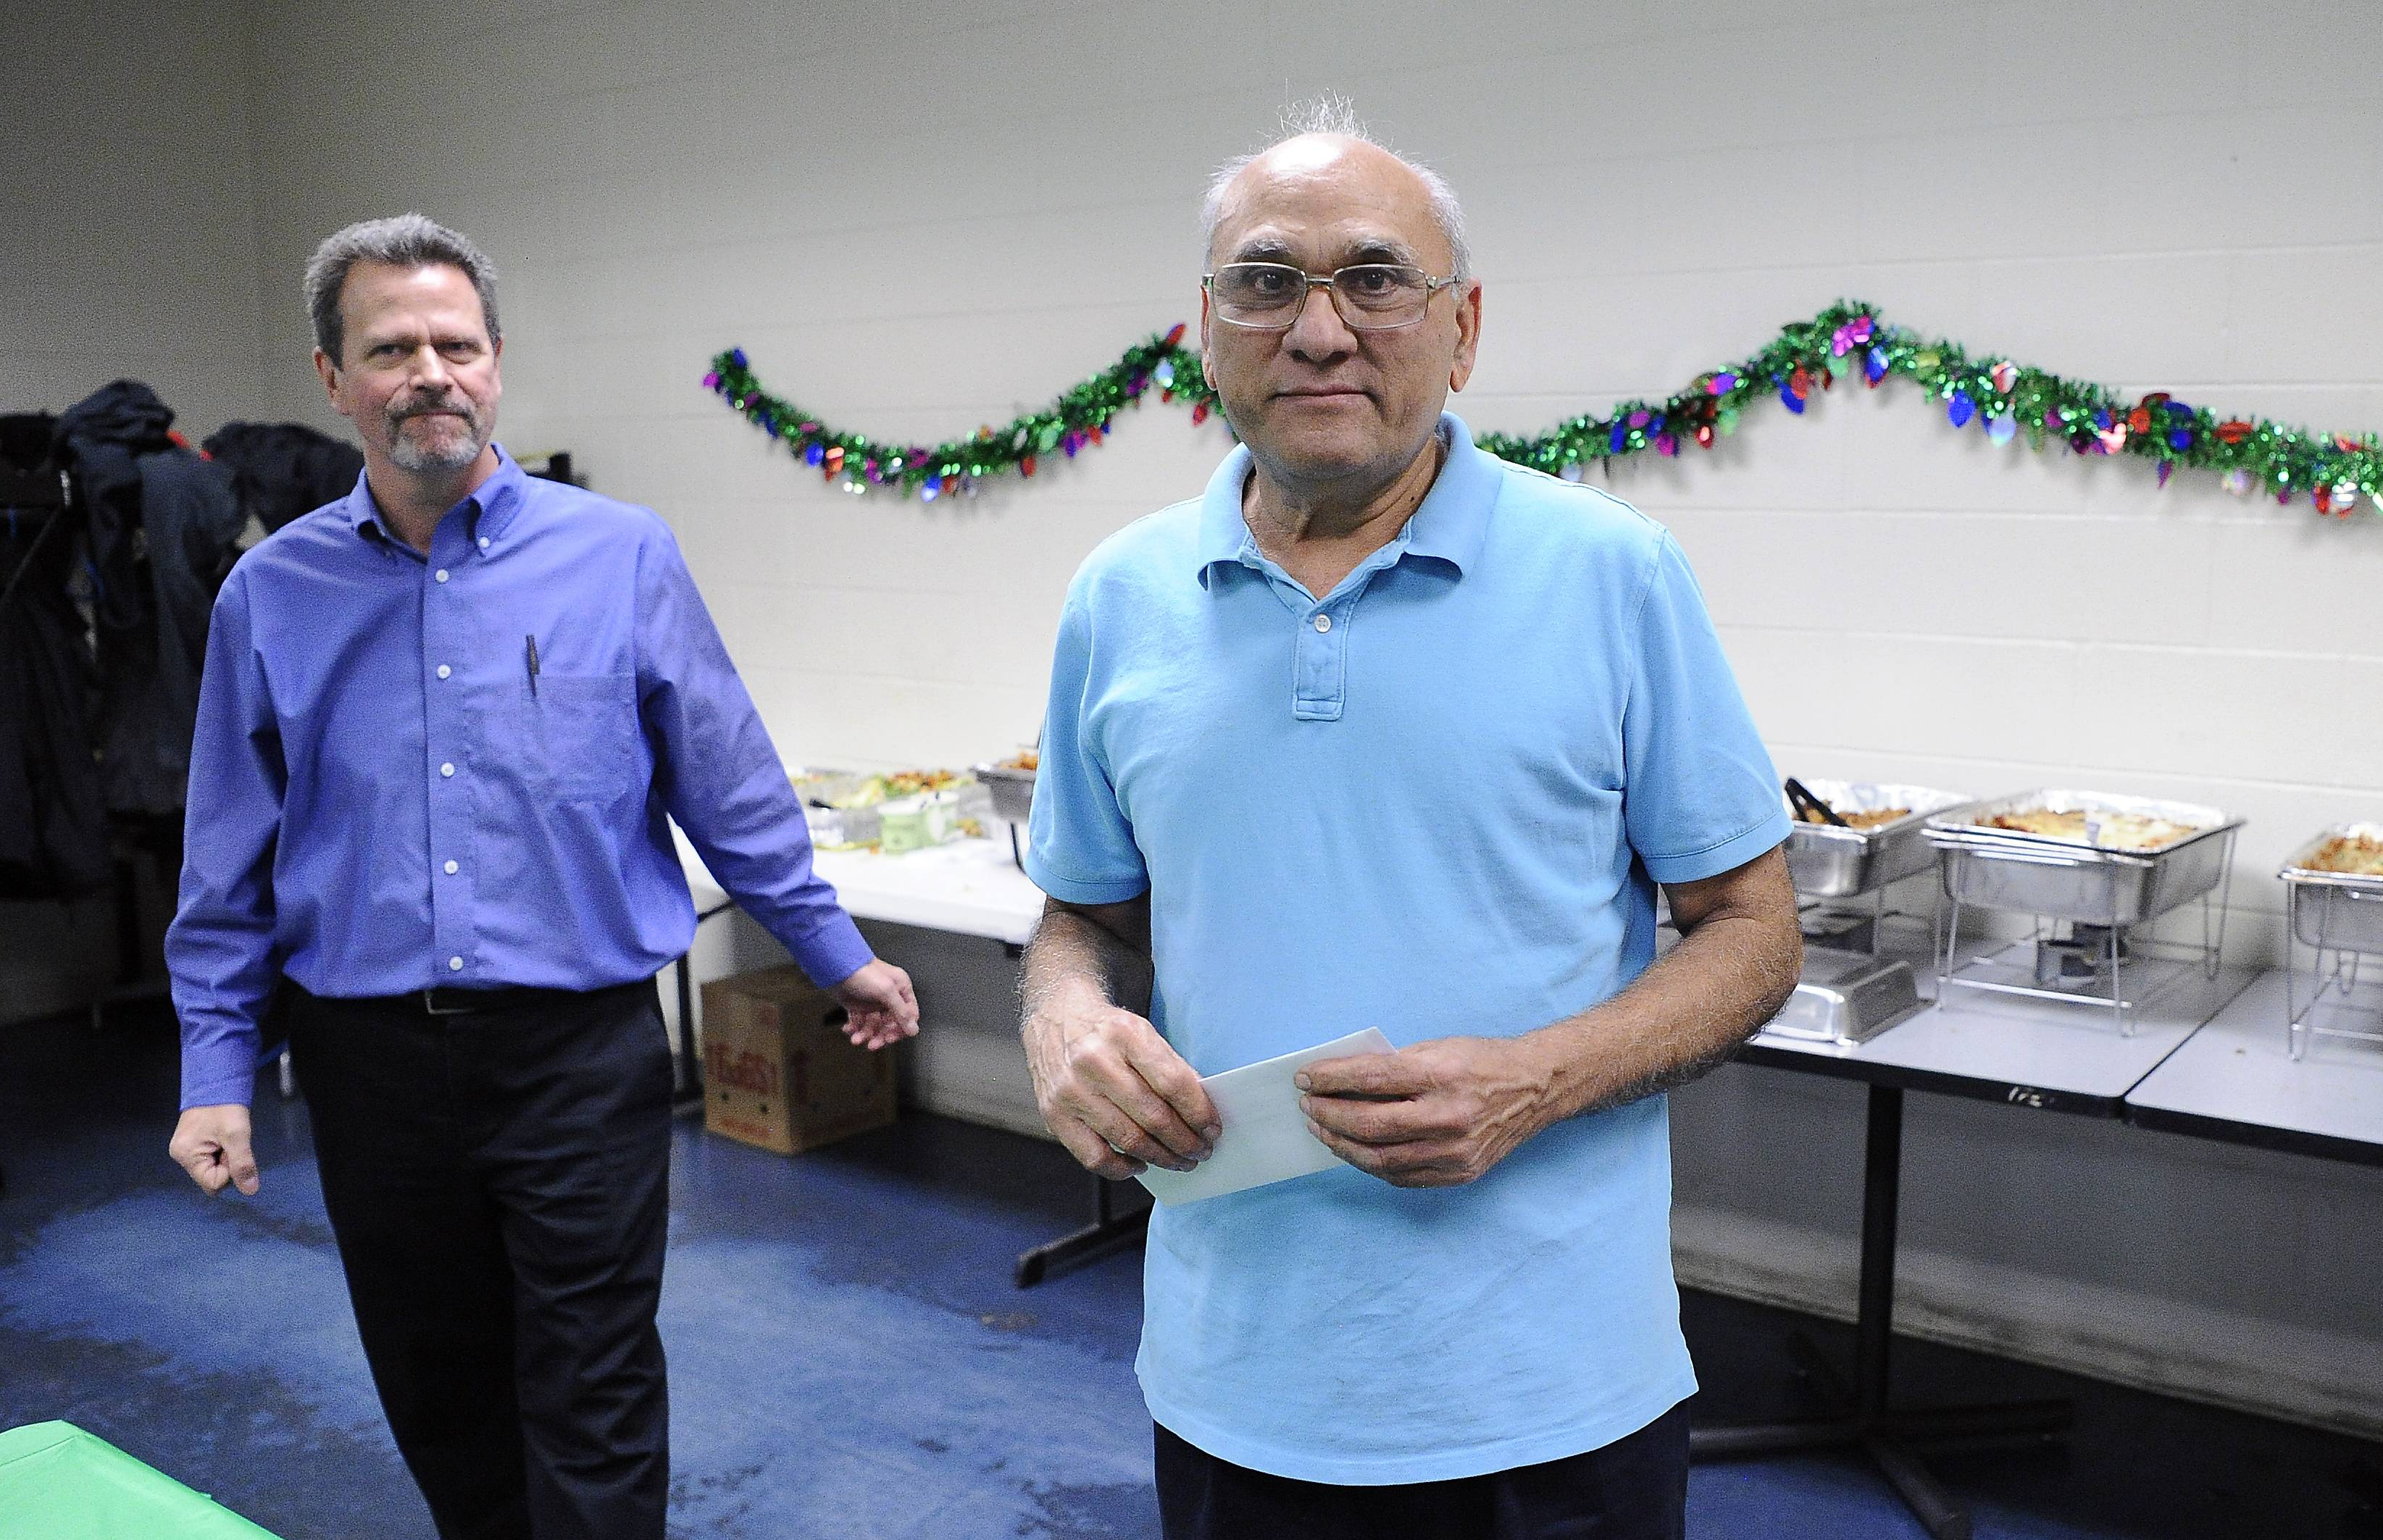 Director of Production Don Stamper, left, congratulates Rameshchandra Patel, who won the award of excellence for part-time employee, at an awards luncheon at the Daily Herald Printing Center.